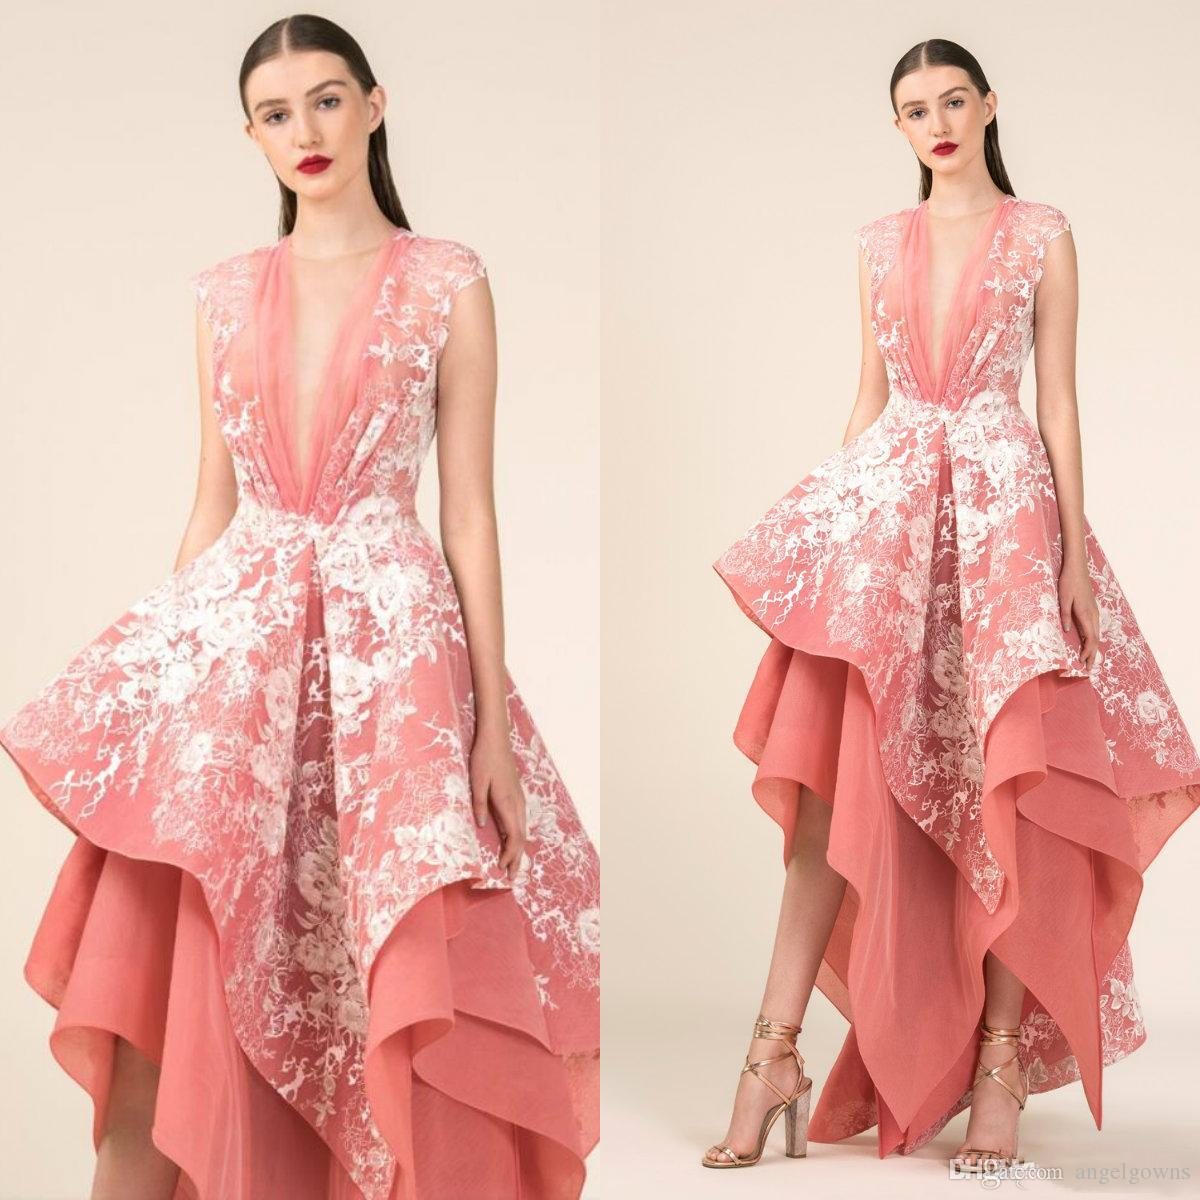 ca7522d4a6 Saiid Kobeisy Asymmetrical Prom Dresses A Line Puffy Skirt Latest 2019 Sexy  Illusion Deep V Neck Lace Appliques Evening Dress Party Wear Long Gowns  Pink ...